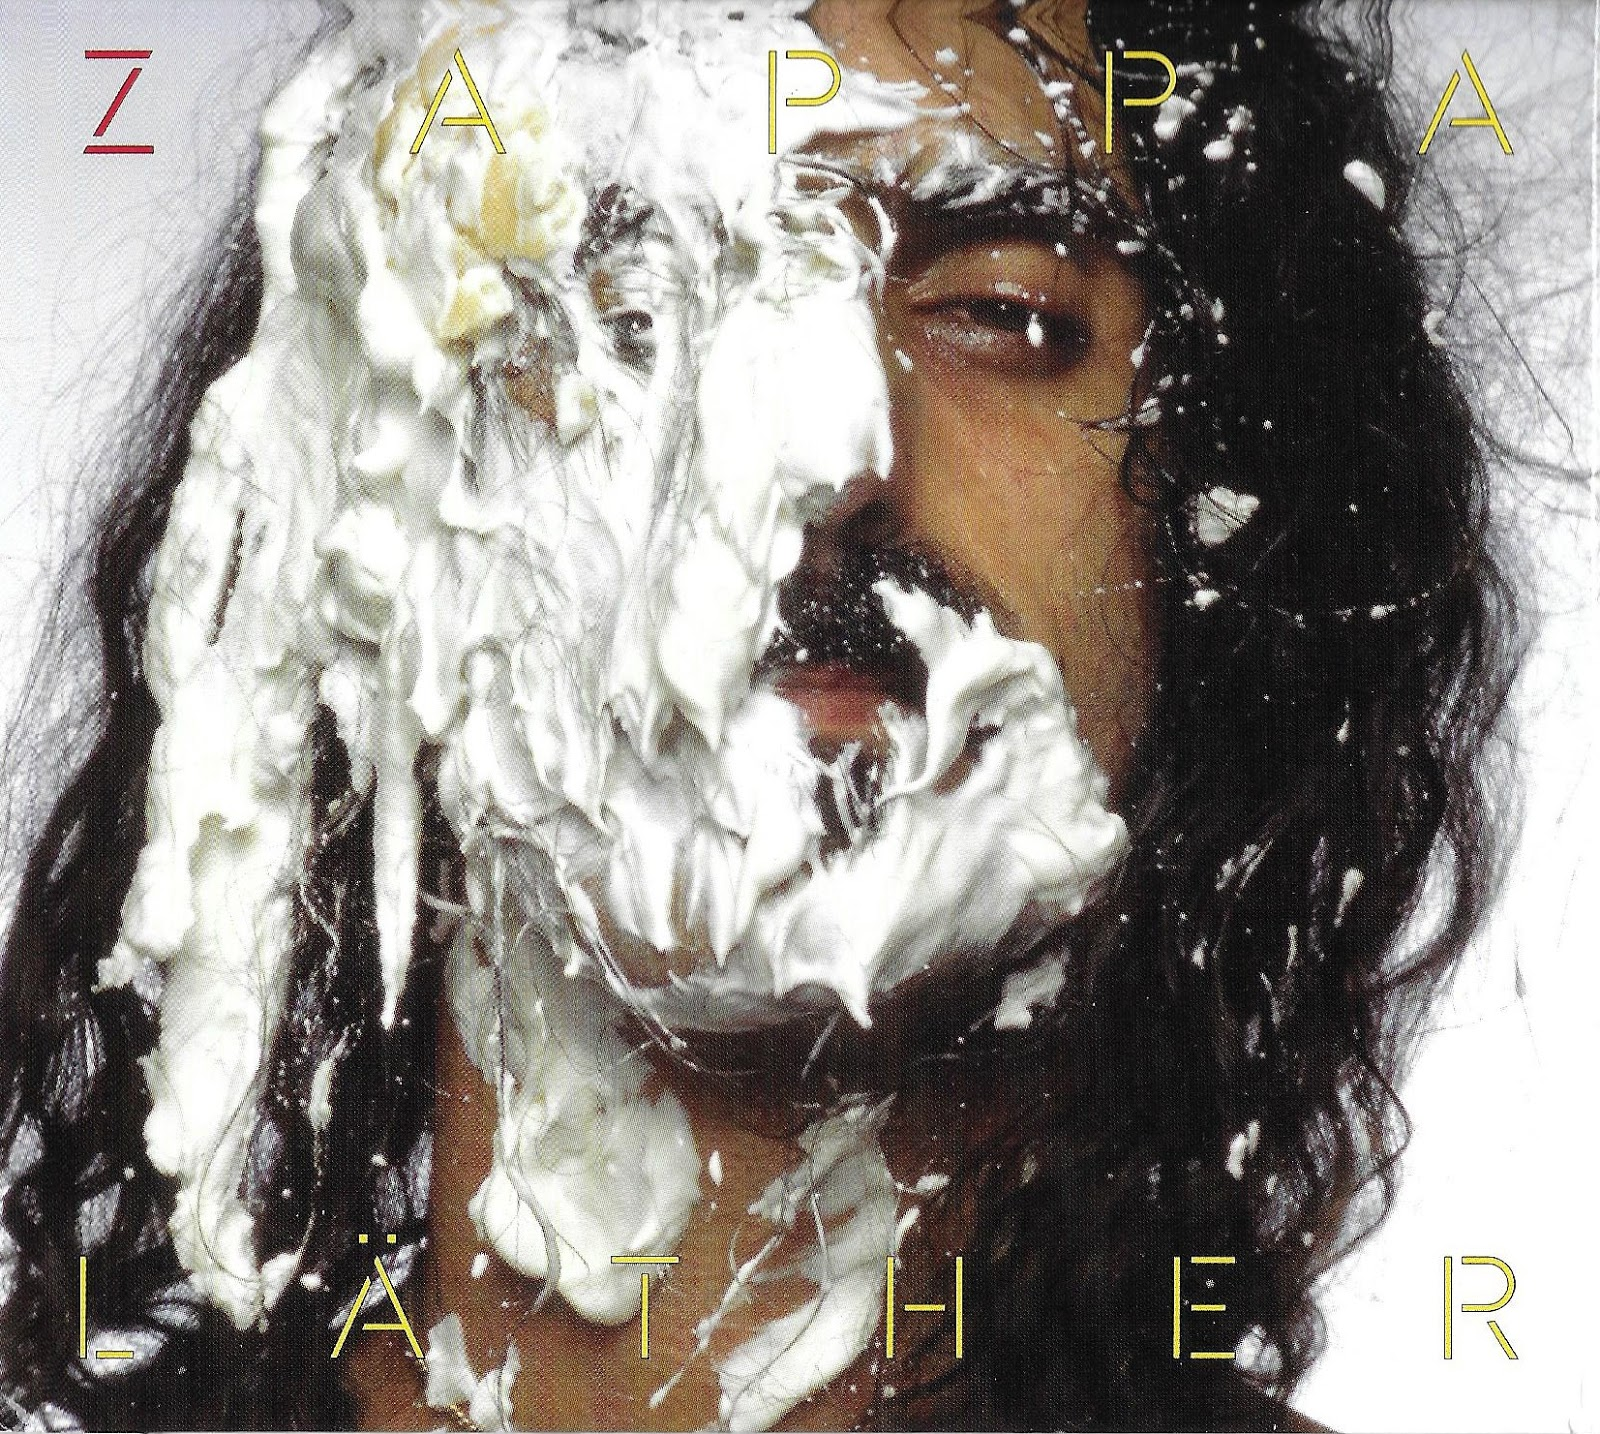 Jazz Rock Fusion Guitar Frank Zappa 1996 2012 L 228 Ther